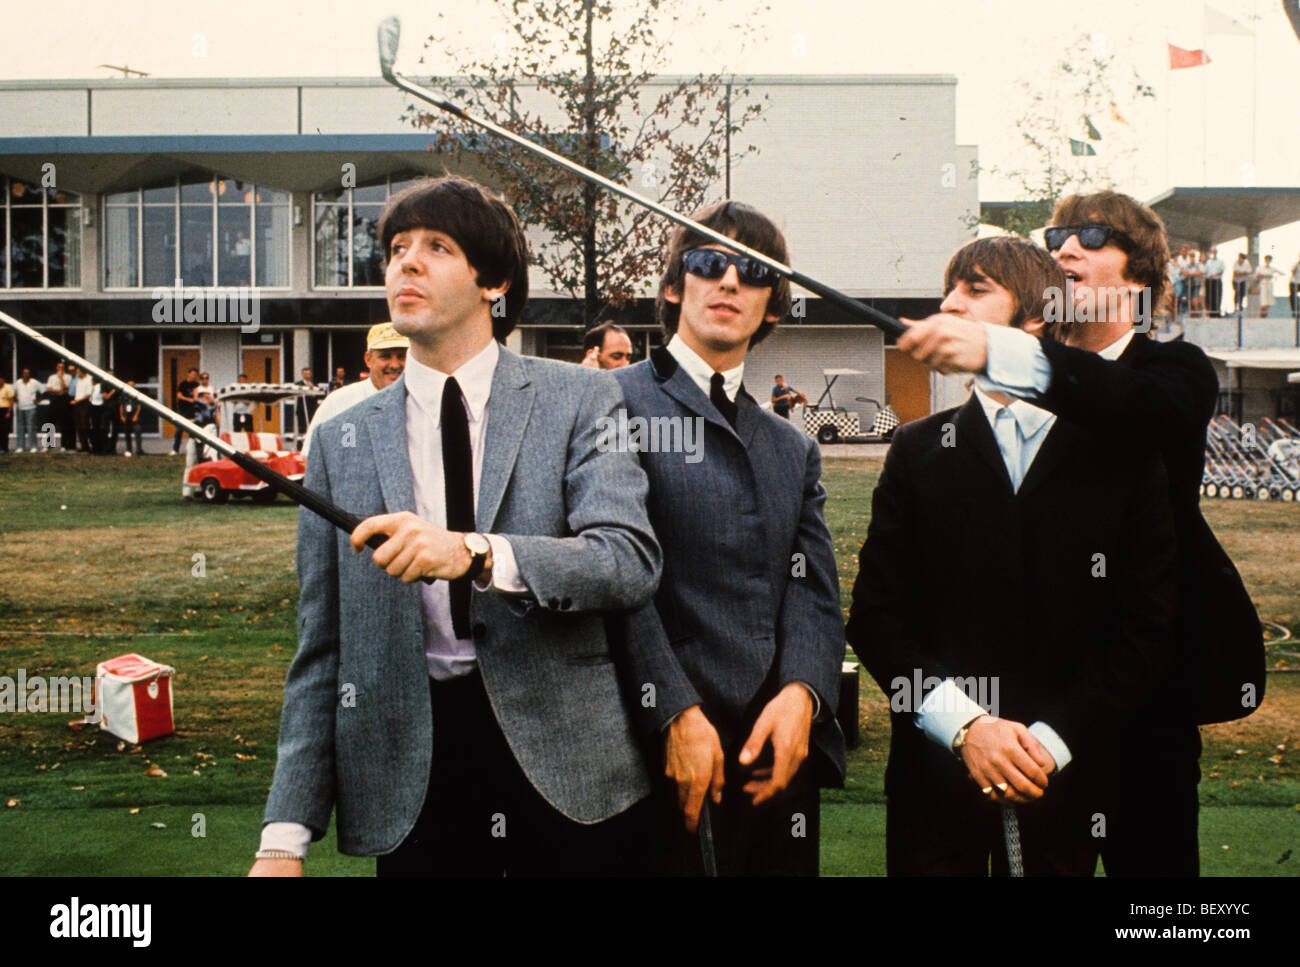 the beatles - Stock Image